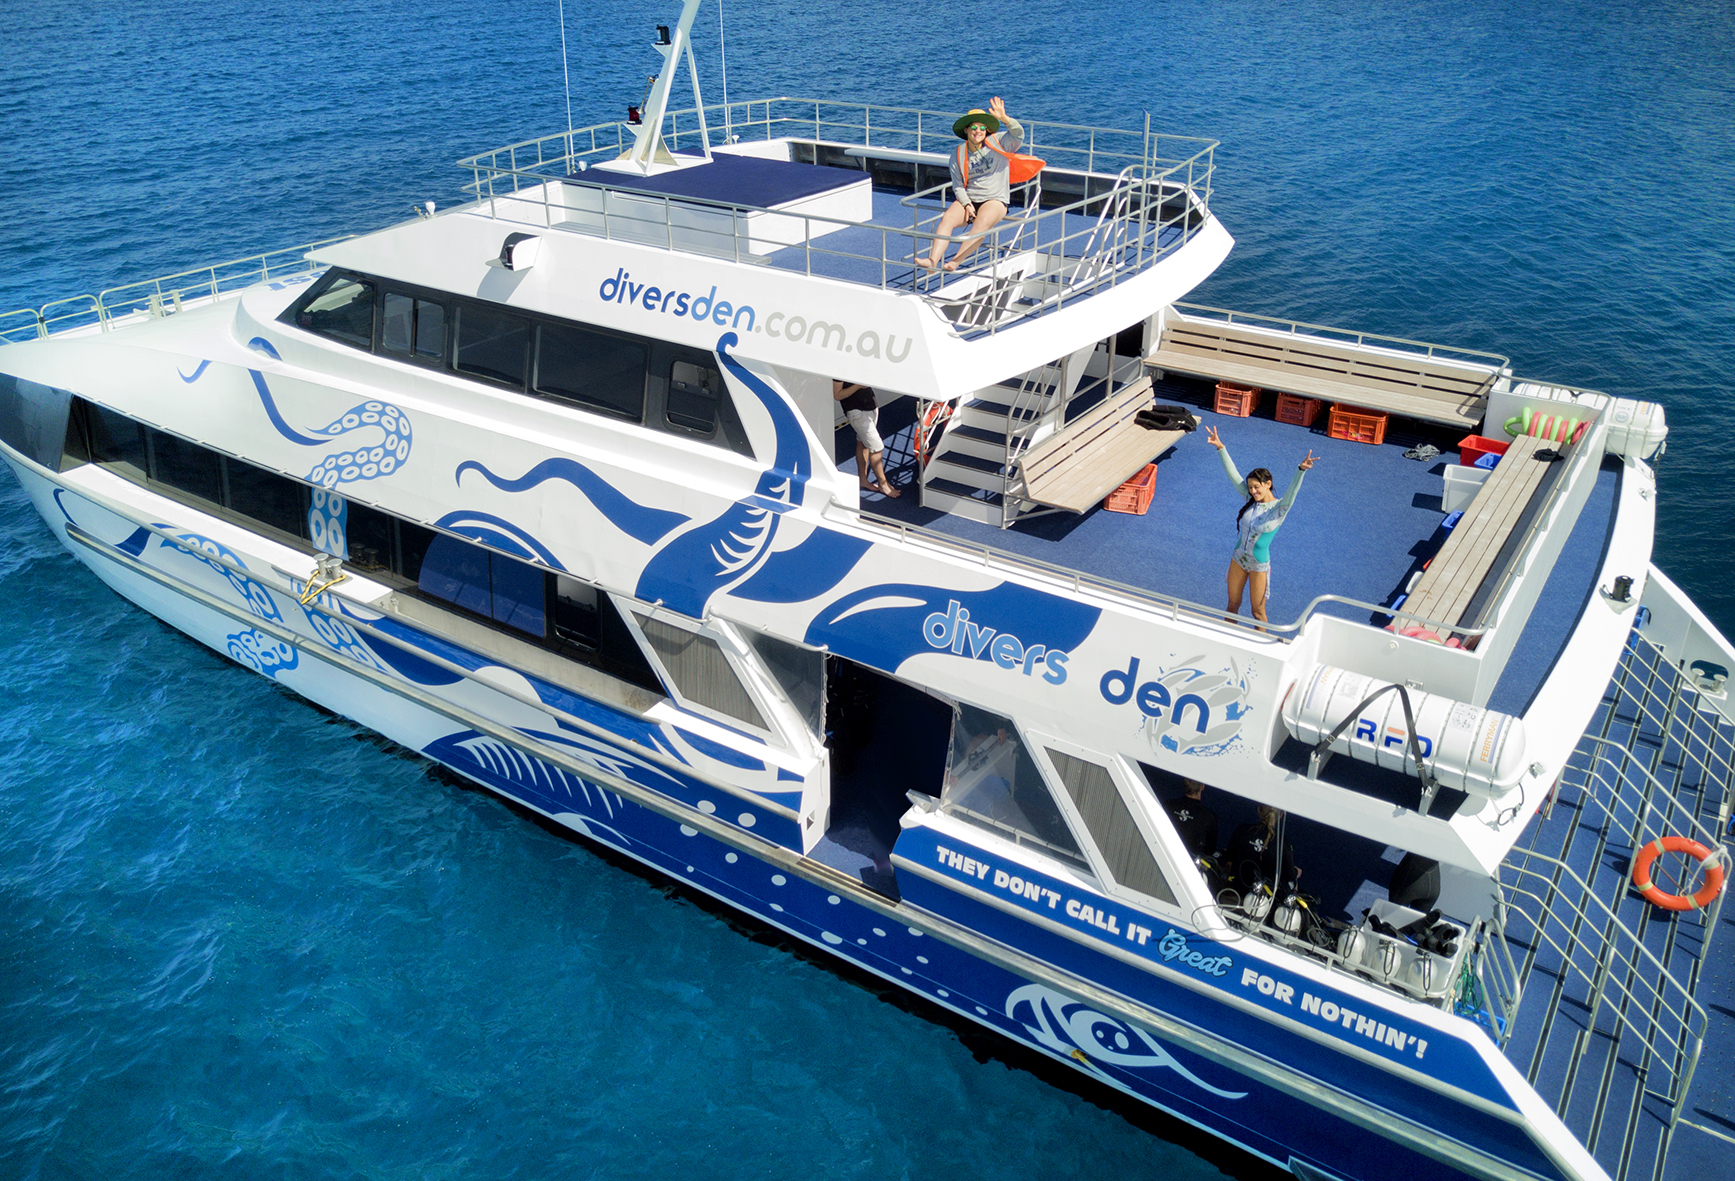 AquaQuest is a brand new custom built luxury dive and snorkel vessel being introduced to Port Douglas. She is fully equipped with the most modern and state of the art facilities including Nitrox. As the newest vessel in Port Douglas she will give passengers an unrivaled comfort with the best experience available as we visit some of the best dive and snorkel locations on the Outer Great Barrier Reef at  Agincourt, Opal and St Crispin's Reefs.